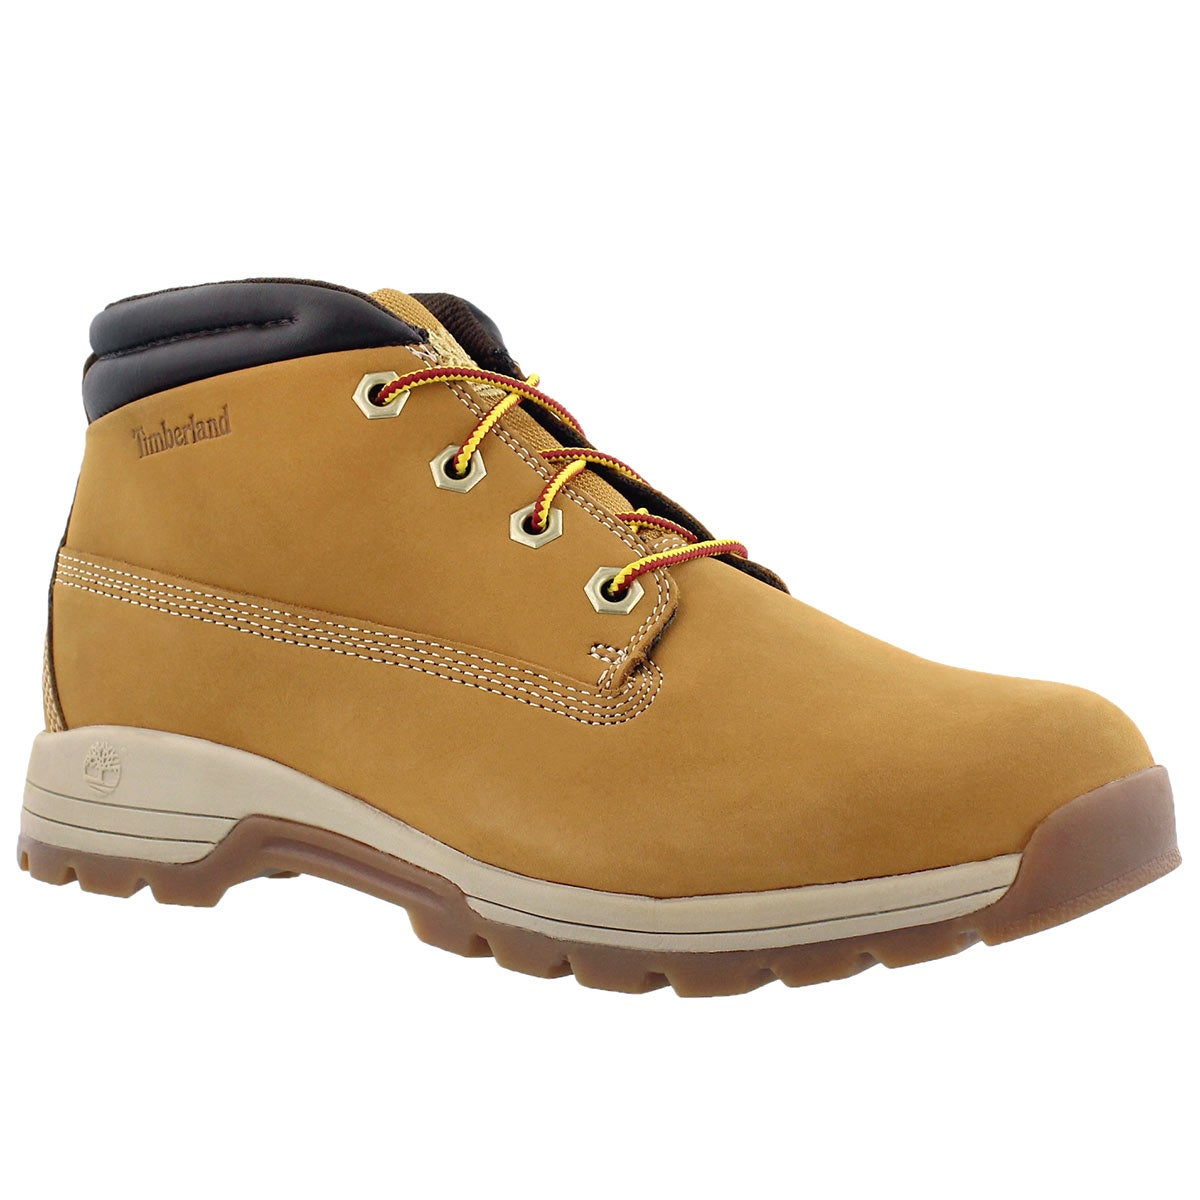 Men's STRATMORE wheat hiking boots